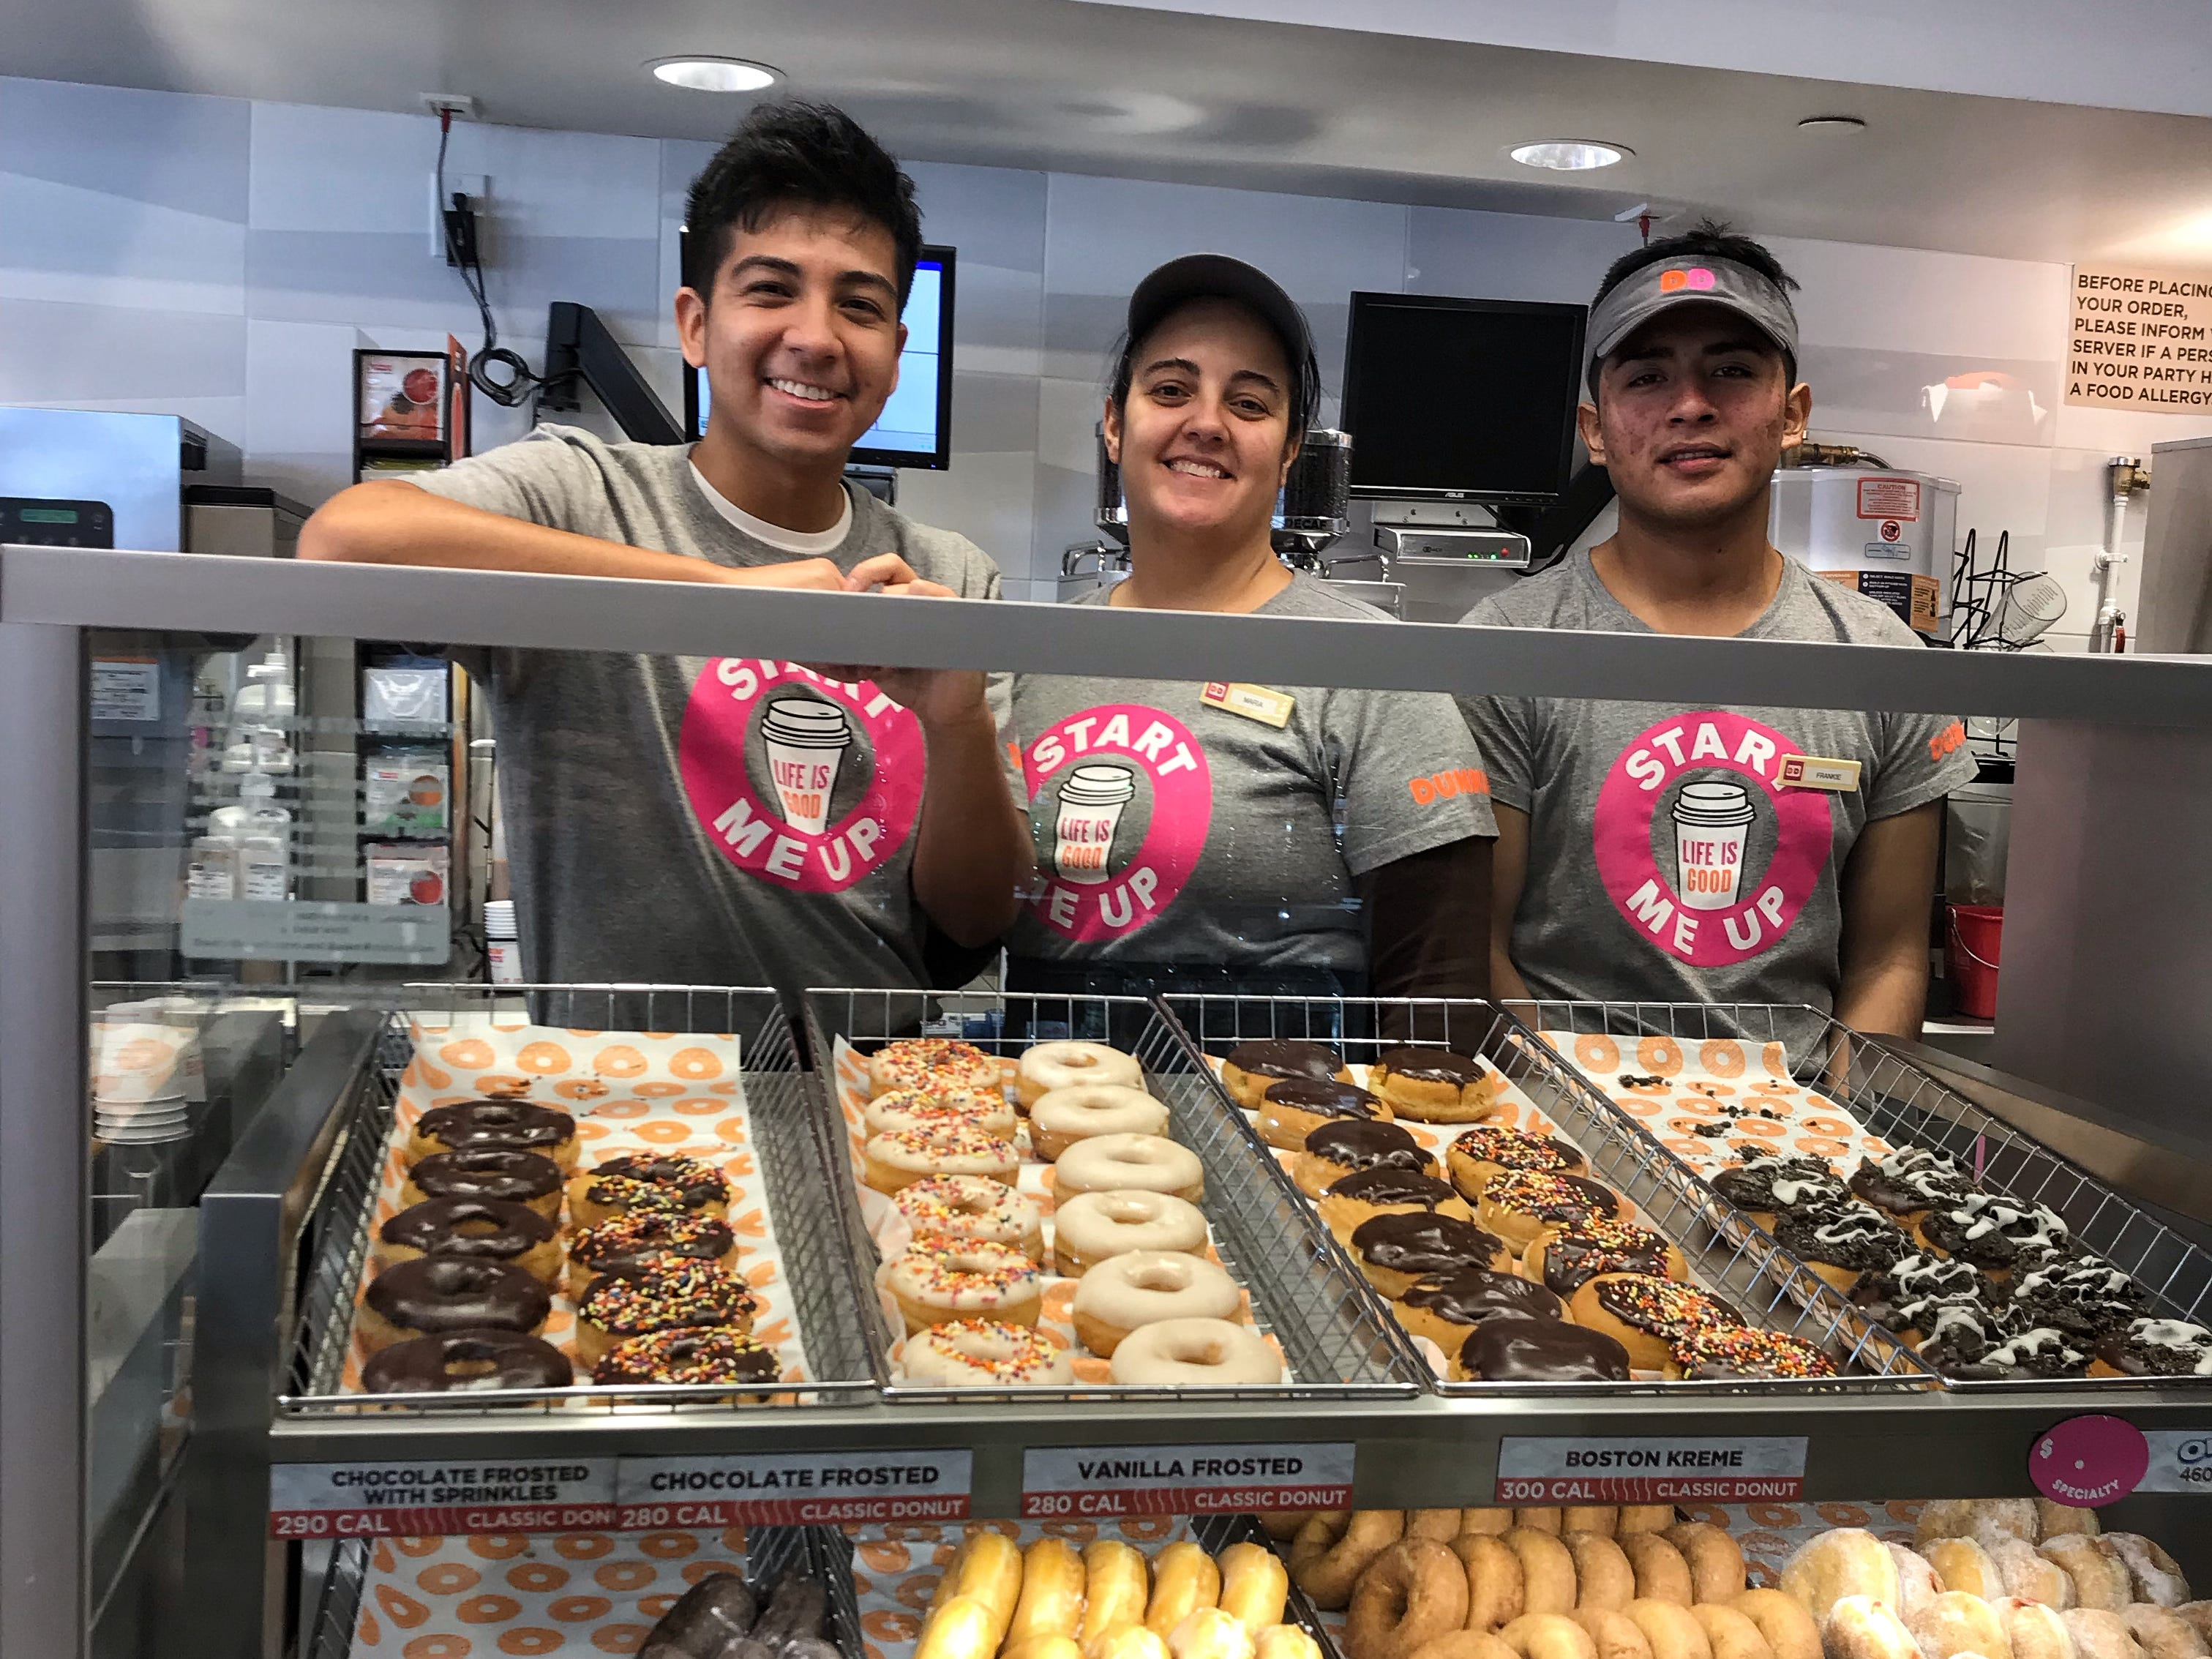 The new bakery-style display at the Dunkin/DD store in Hartsdale, the first Next Generation store in Westchester.